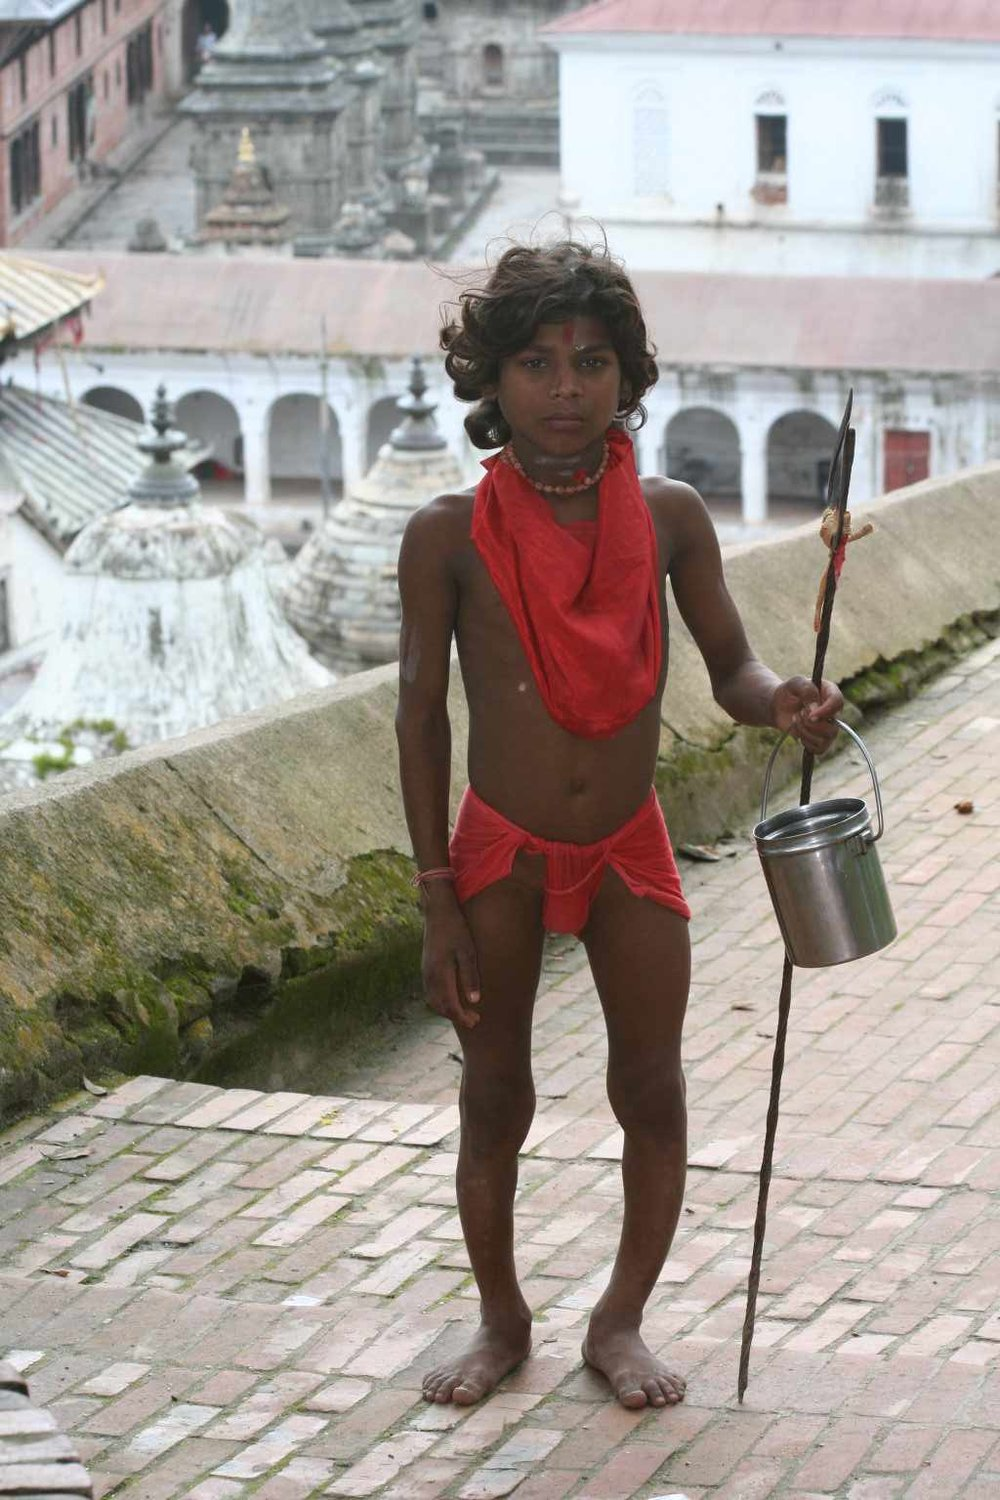 A begging child, posing as sadhu in Pashupati, deformed from chronic malnutrition. About 49% of Nepalese children under 5 years old suffer from stunting, a measure of chronic malnutrion, which is one of the highest rates in the world.